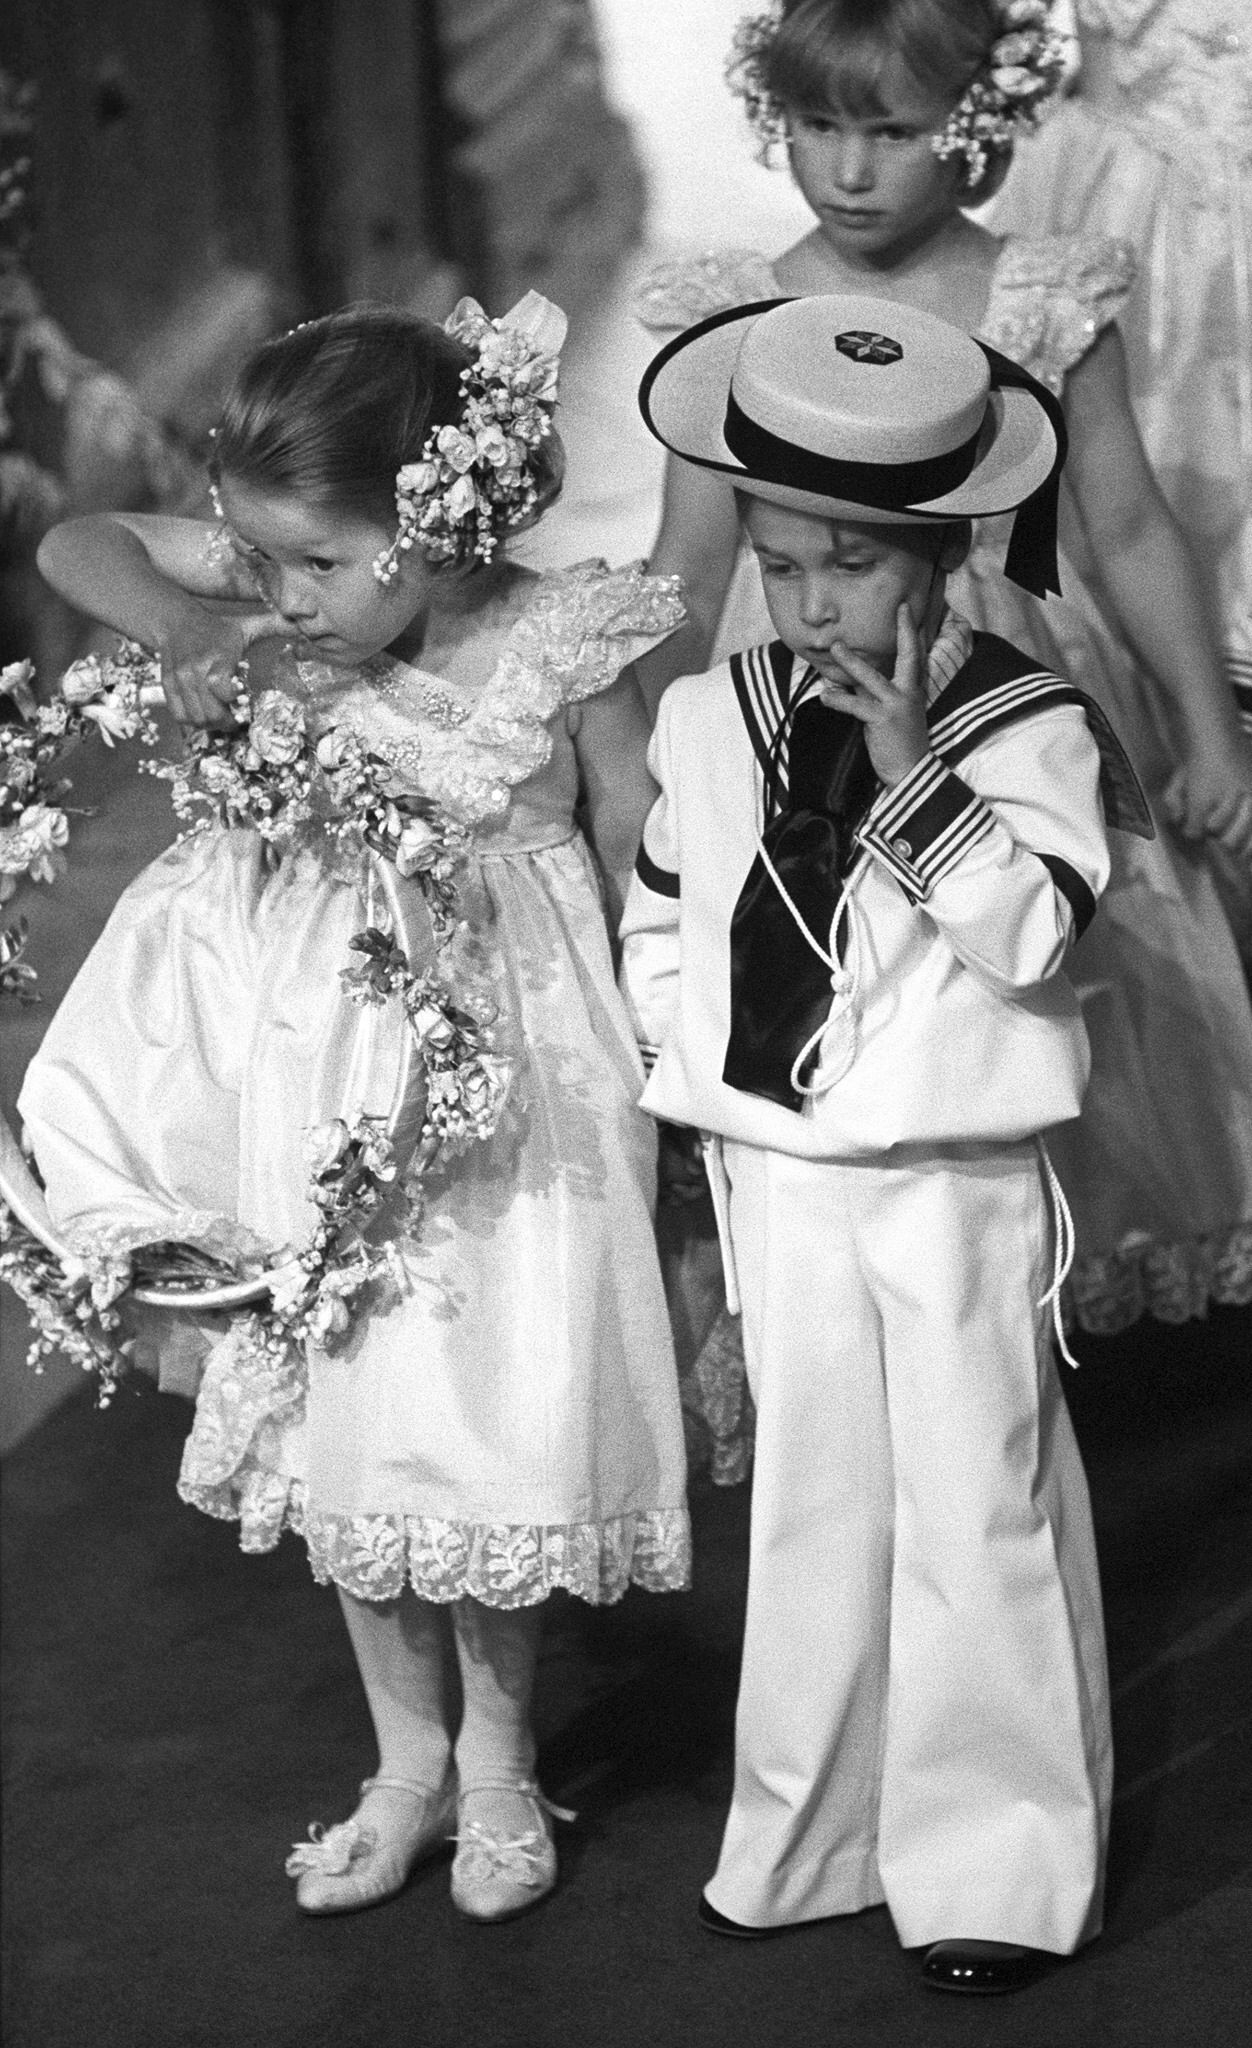 Prince William was pageboy at the wedding of Prince Andrew